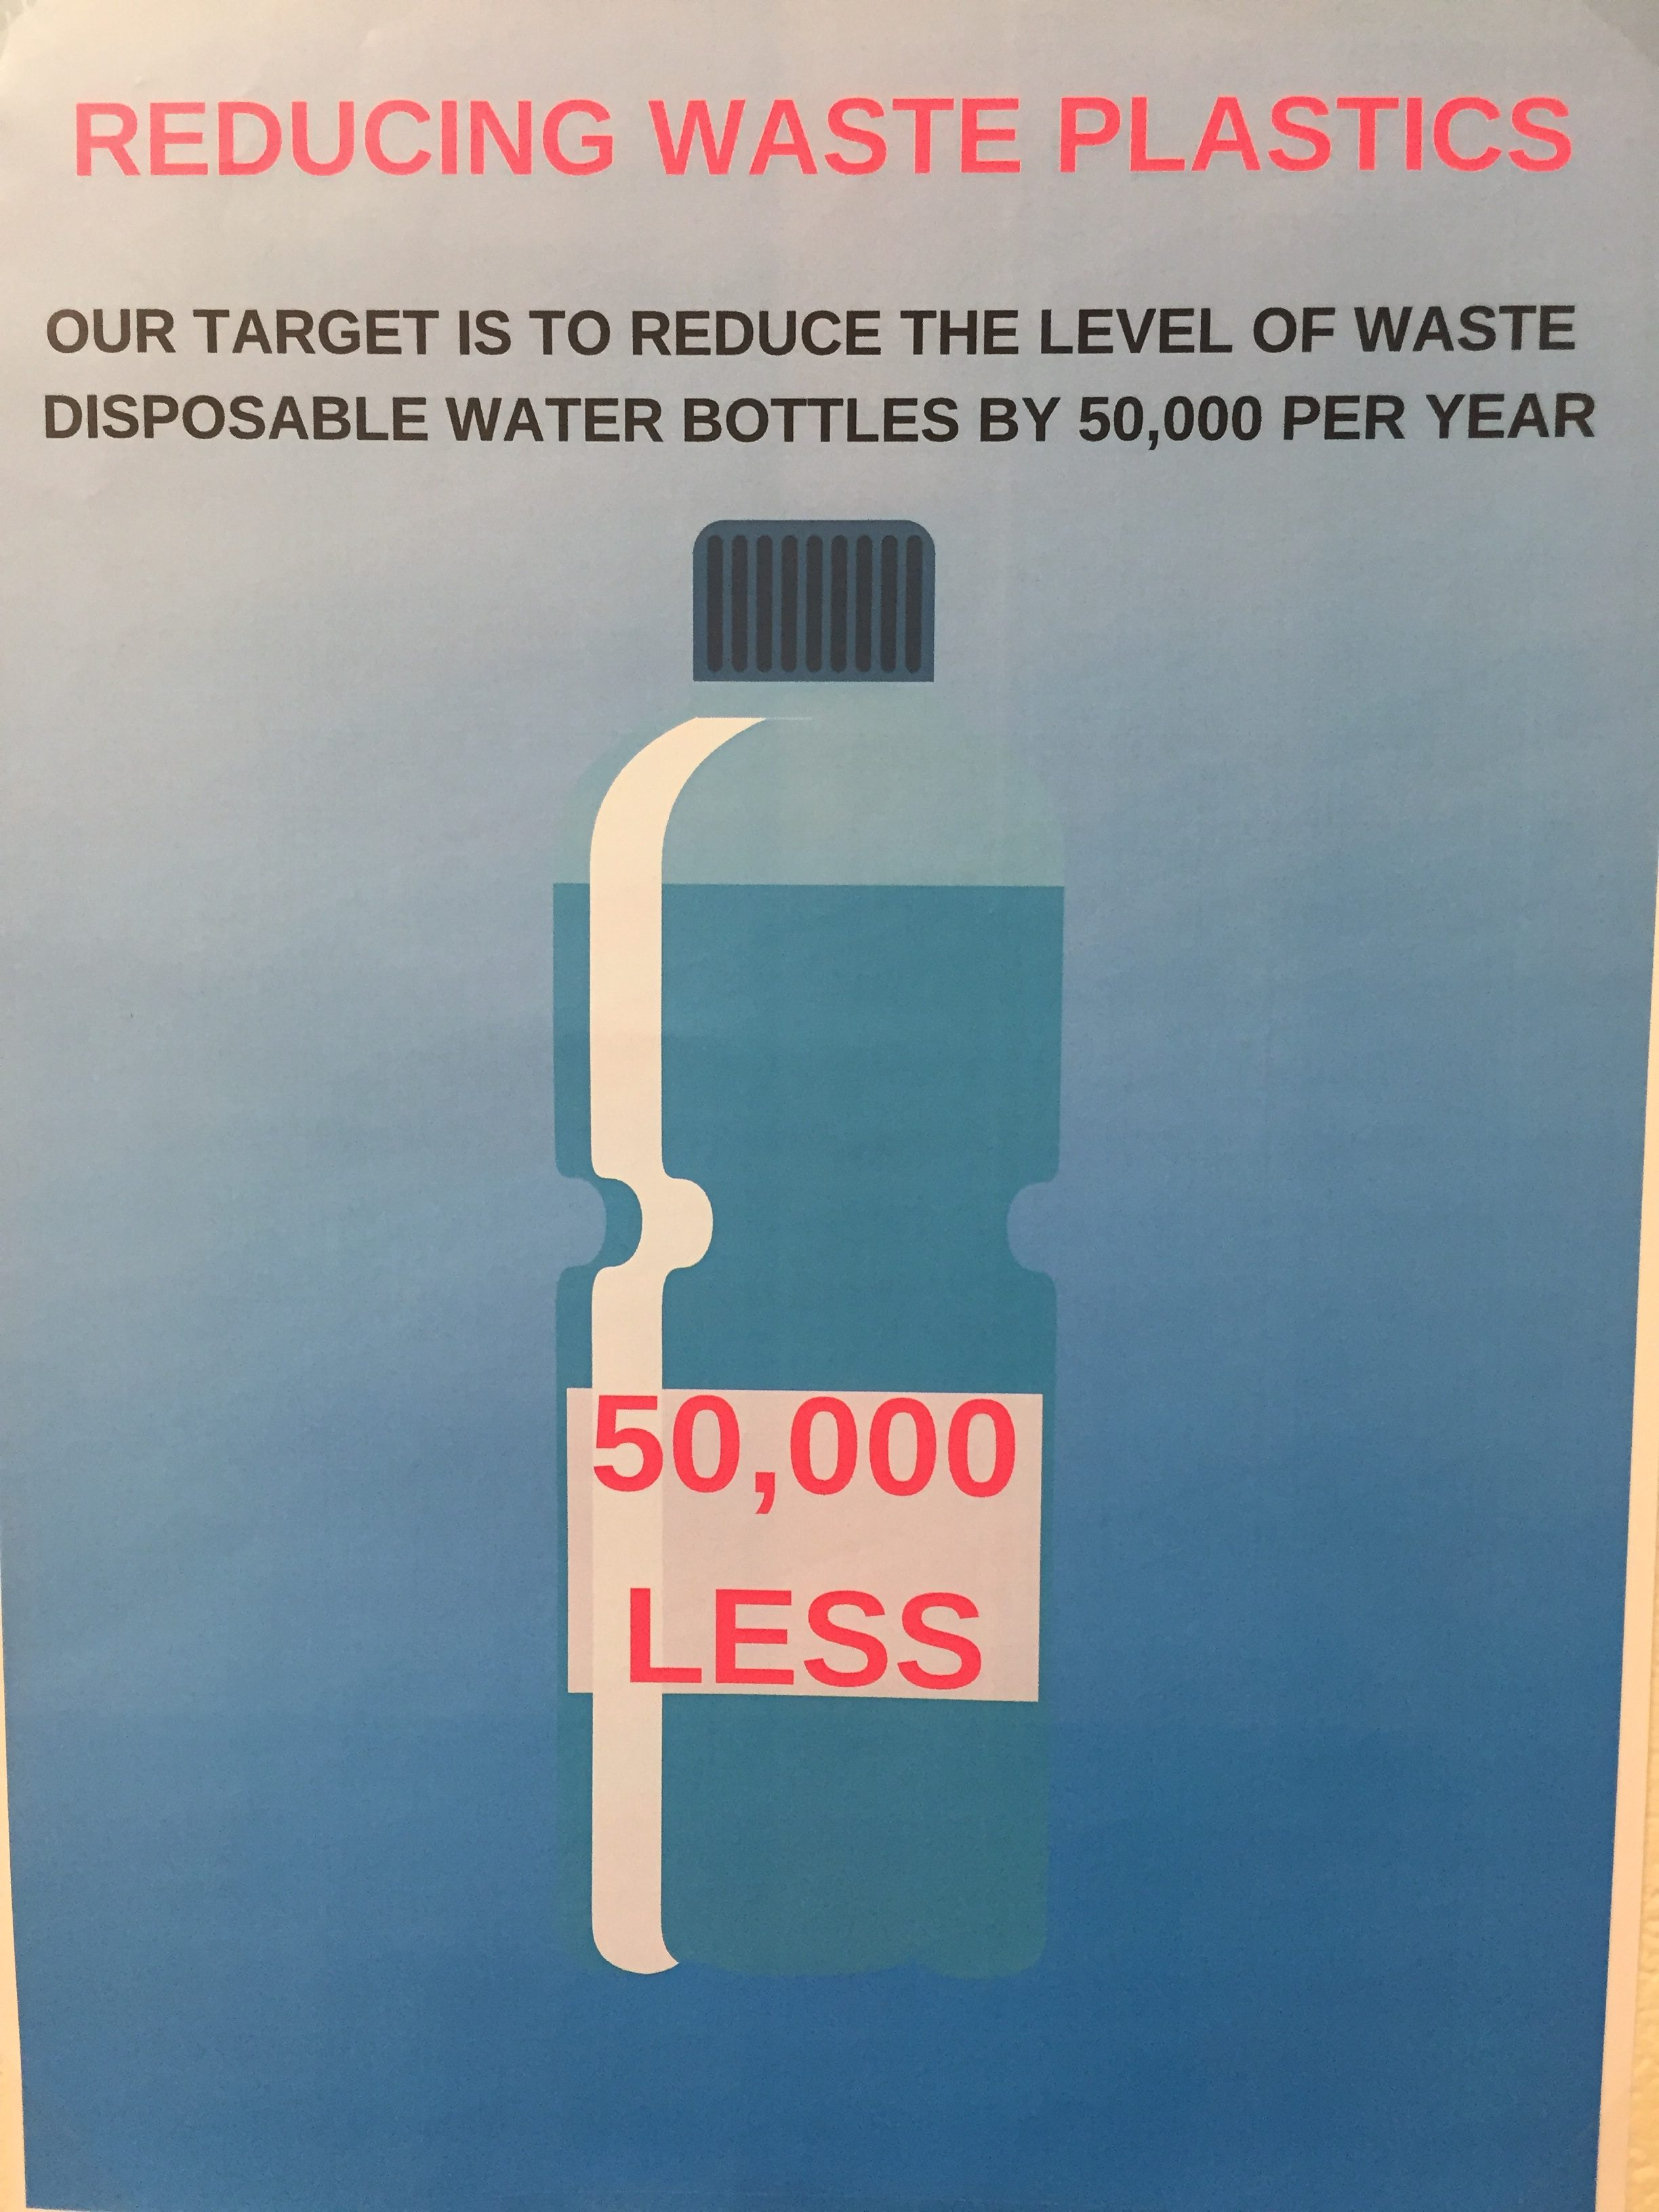 Desmond College reducing plastic waste, helping the environment, and getting healthy